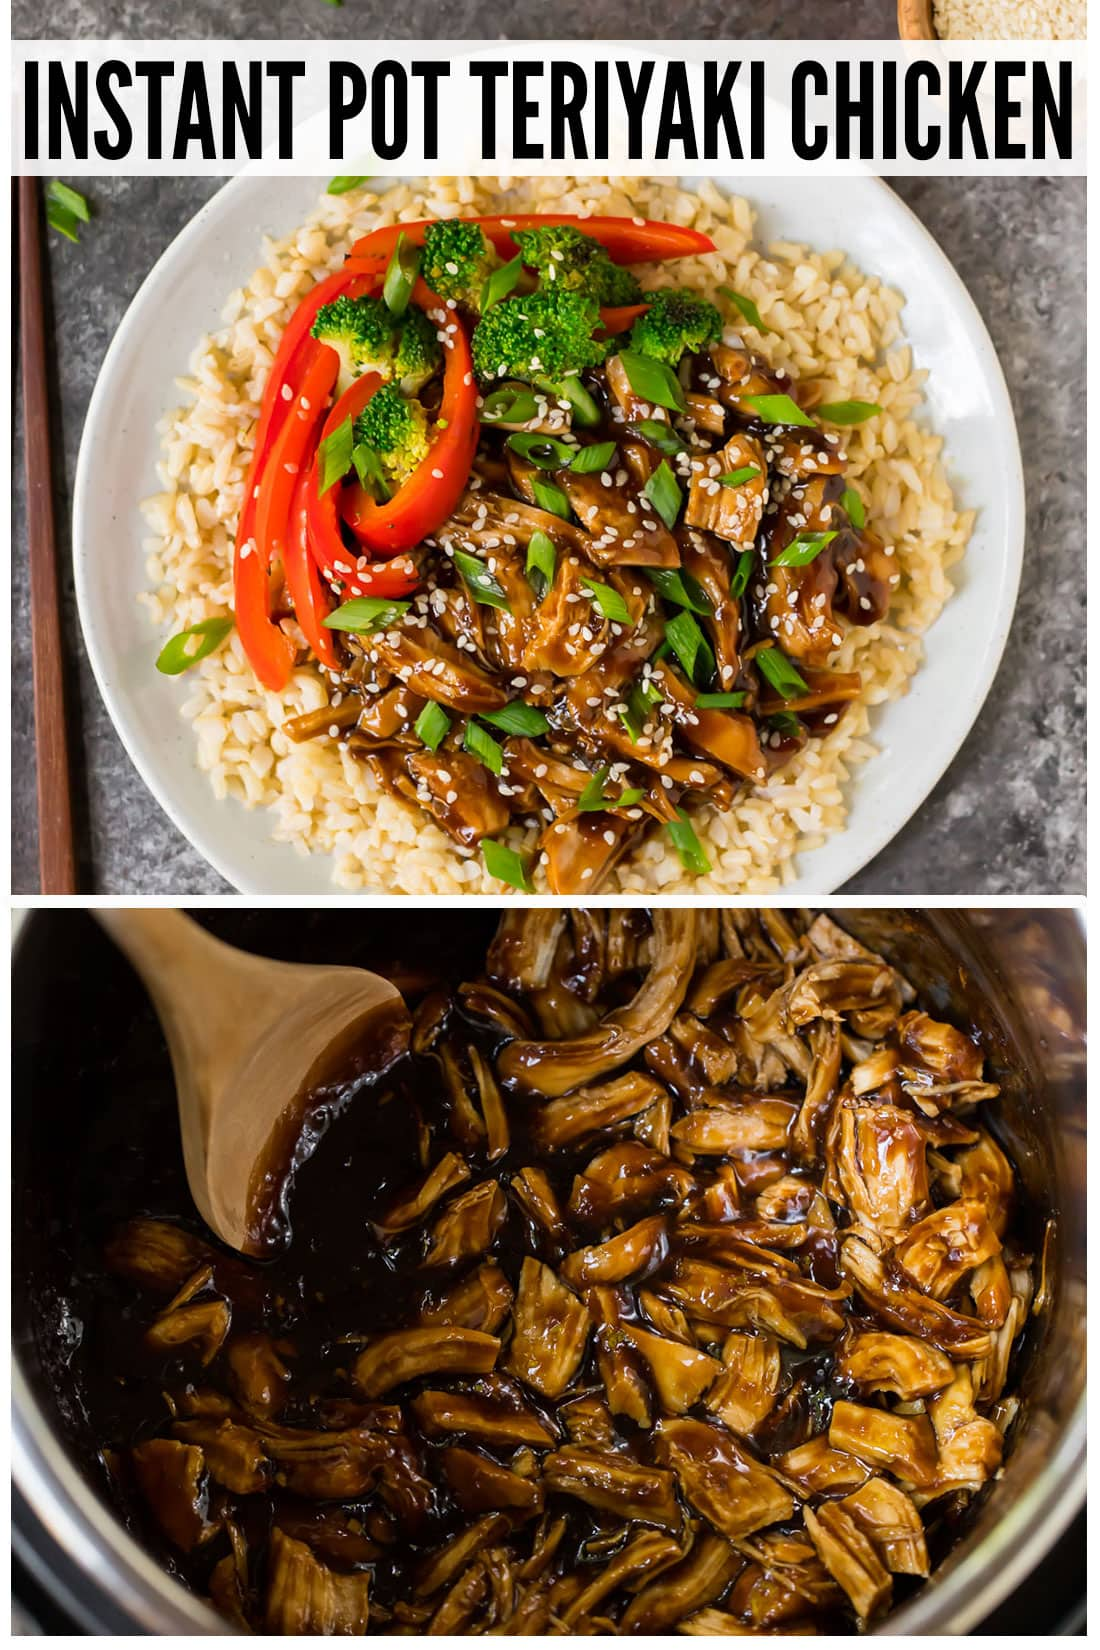 Healthy Instant Pot Teriyaki Chicken from scratch! Use fresh or frozen chicken thighs or breasts and serve with rice or cauliflower rice for a low carb version. This easy pressure cooker recipe tastes like your favorite stir fry but is so much better for you. #wellplated #instantpot #pressurecooker #healthy